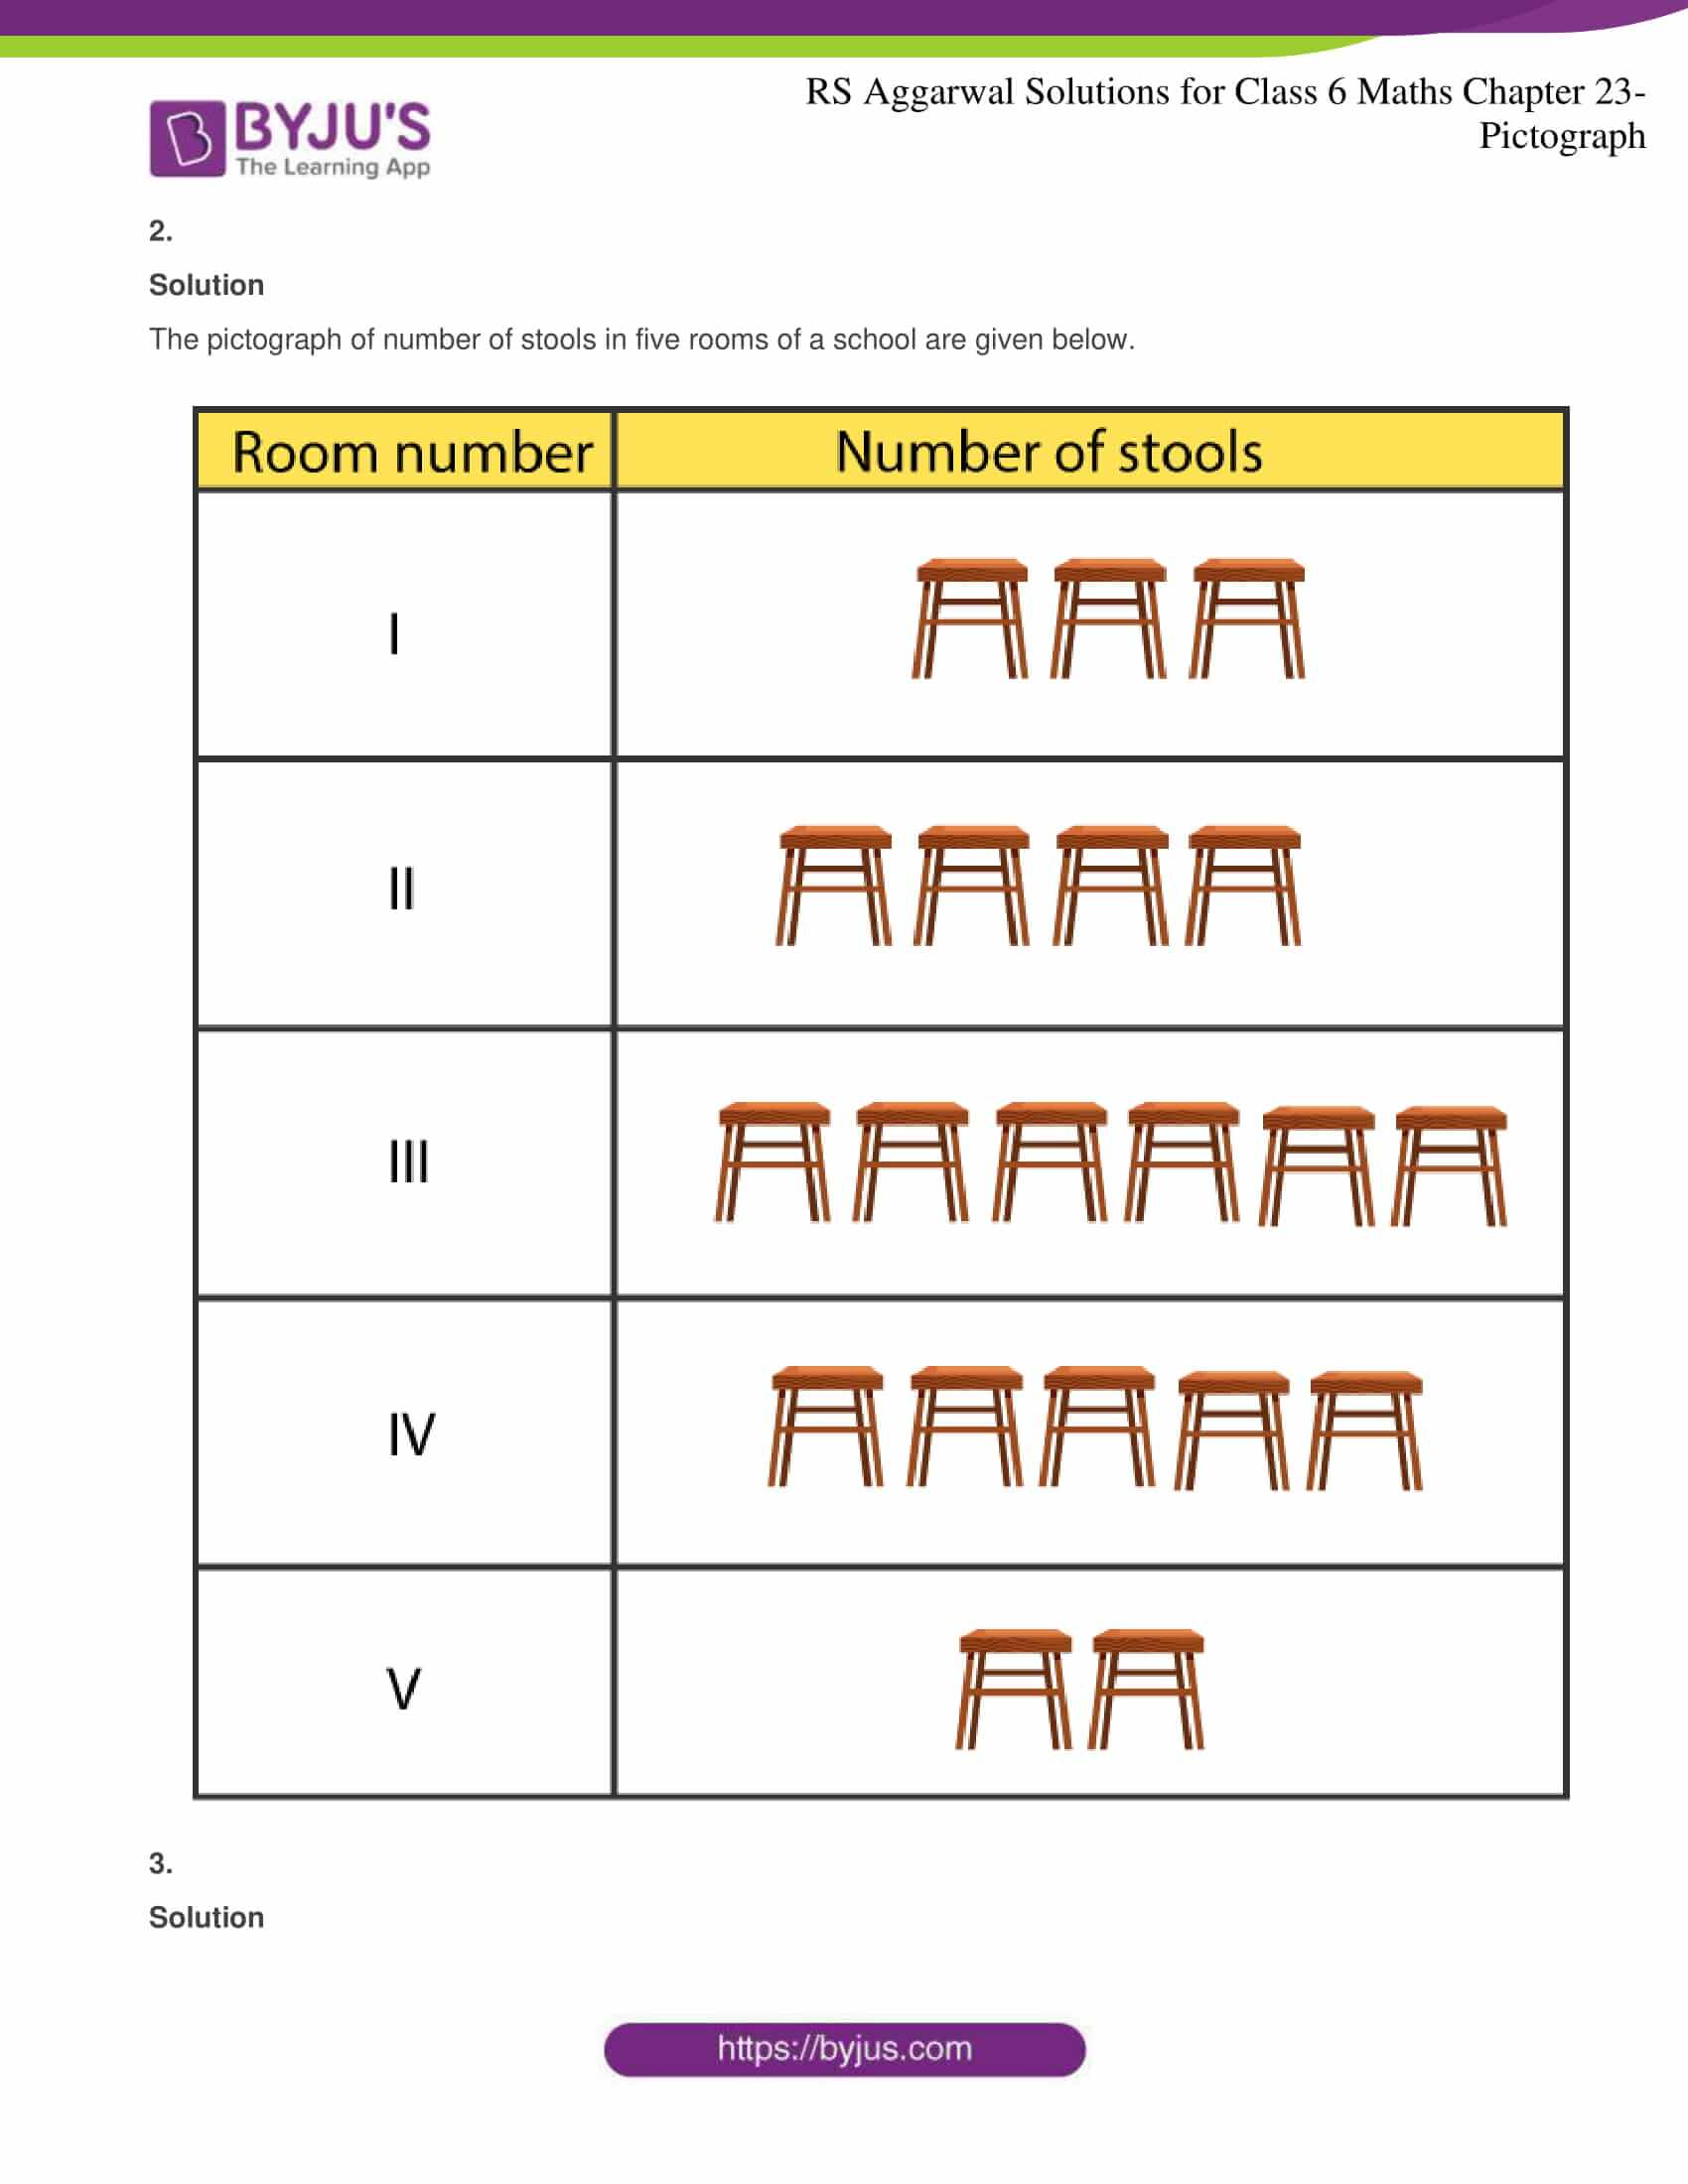 rs aggarwal solutions for class 6 maths chapter 23 2